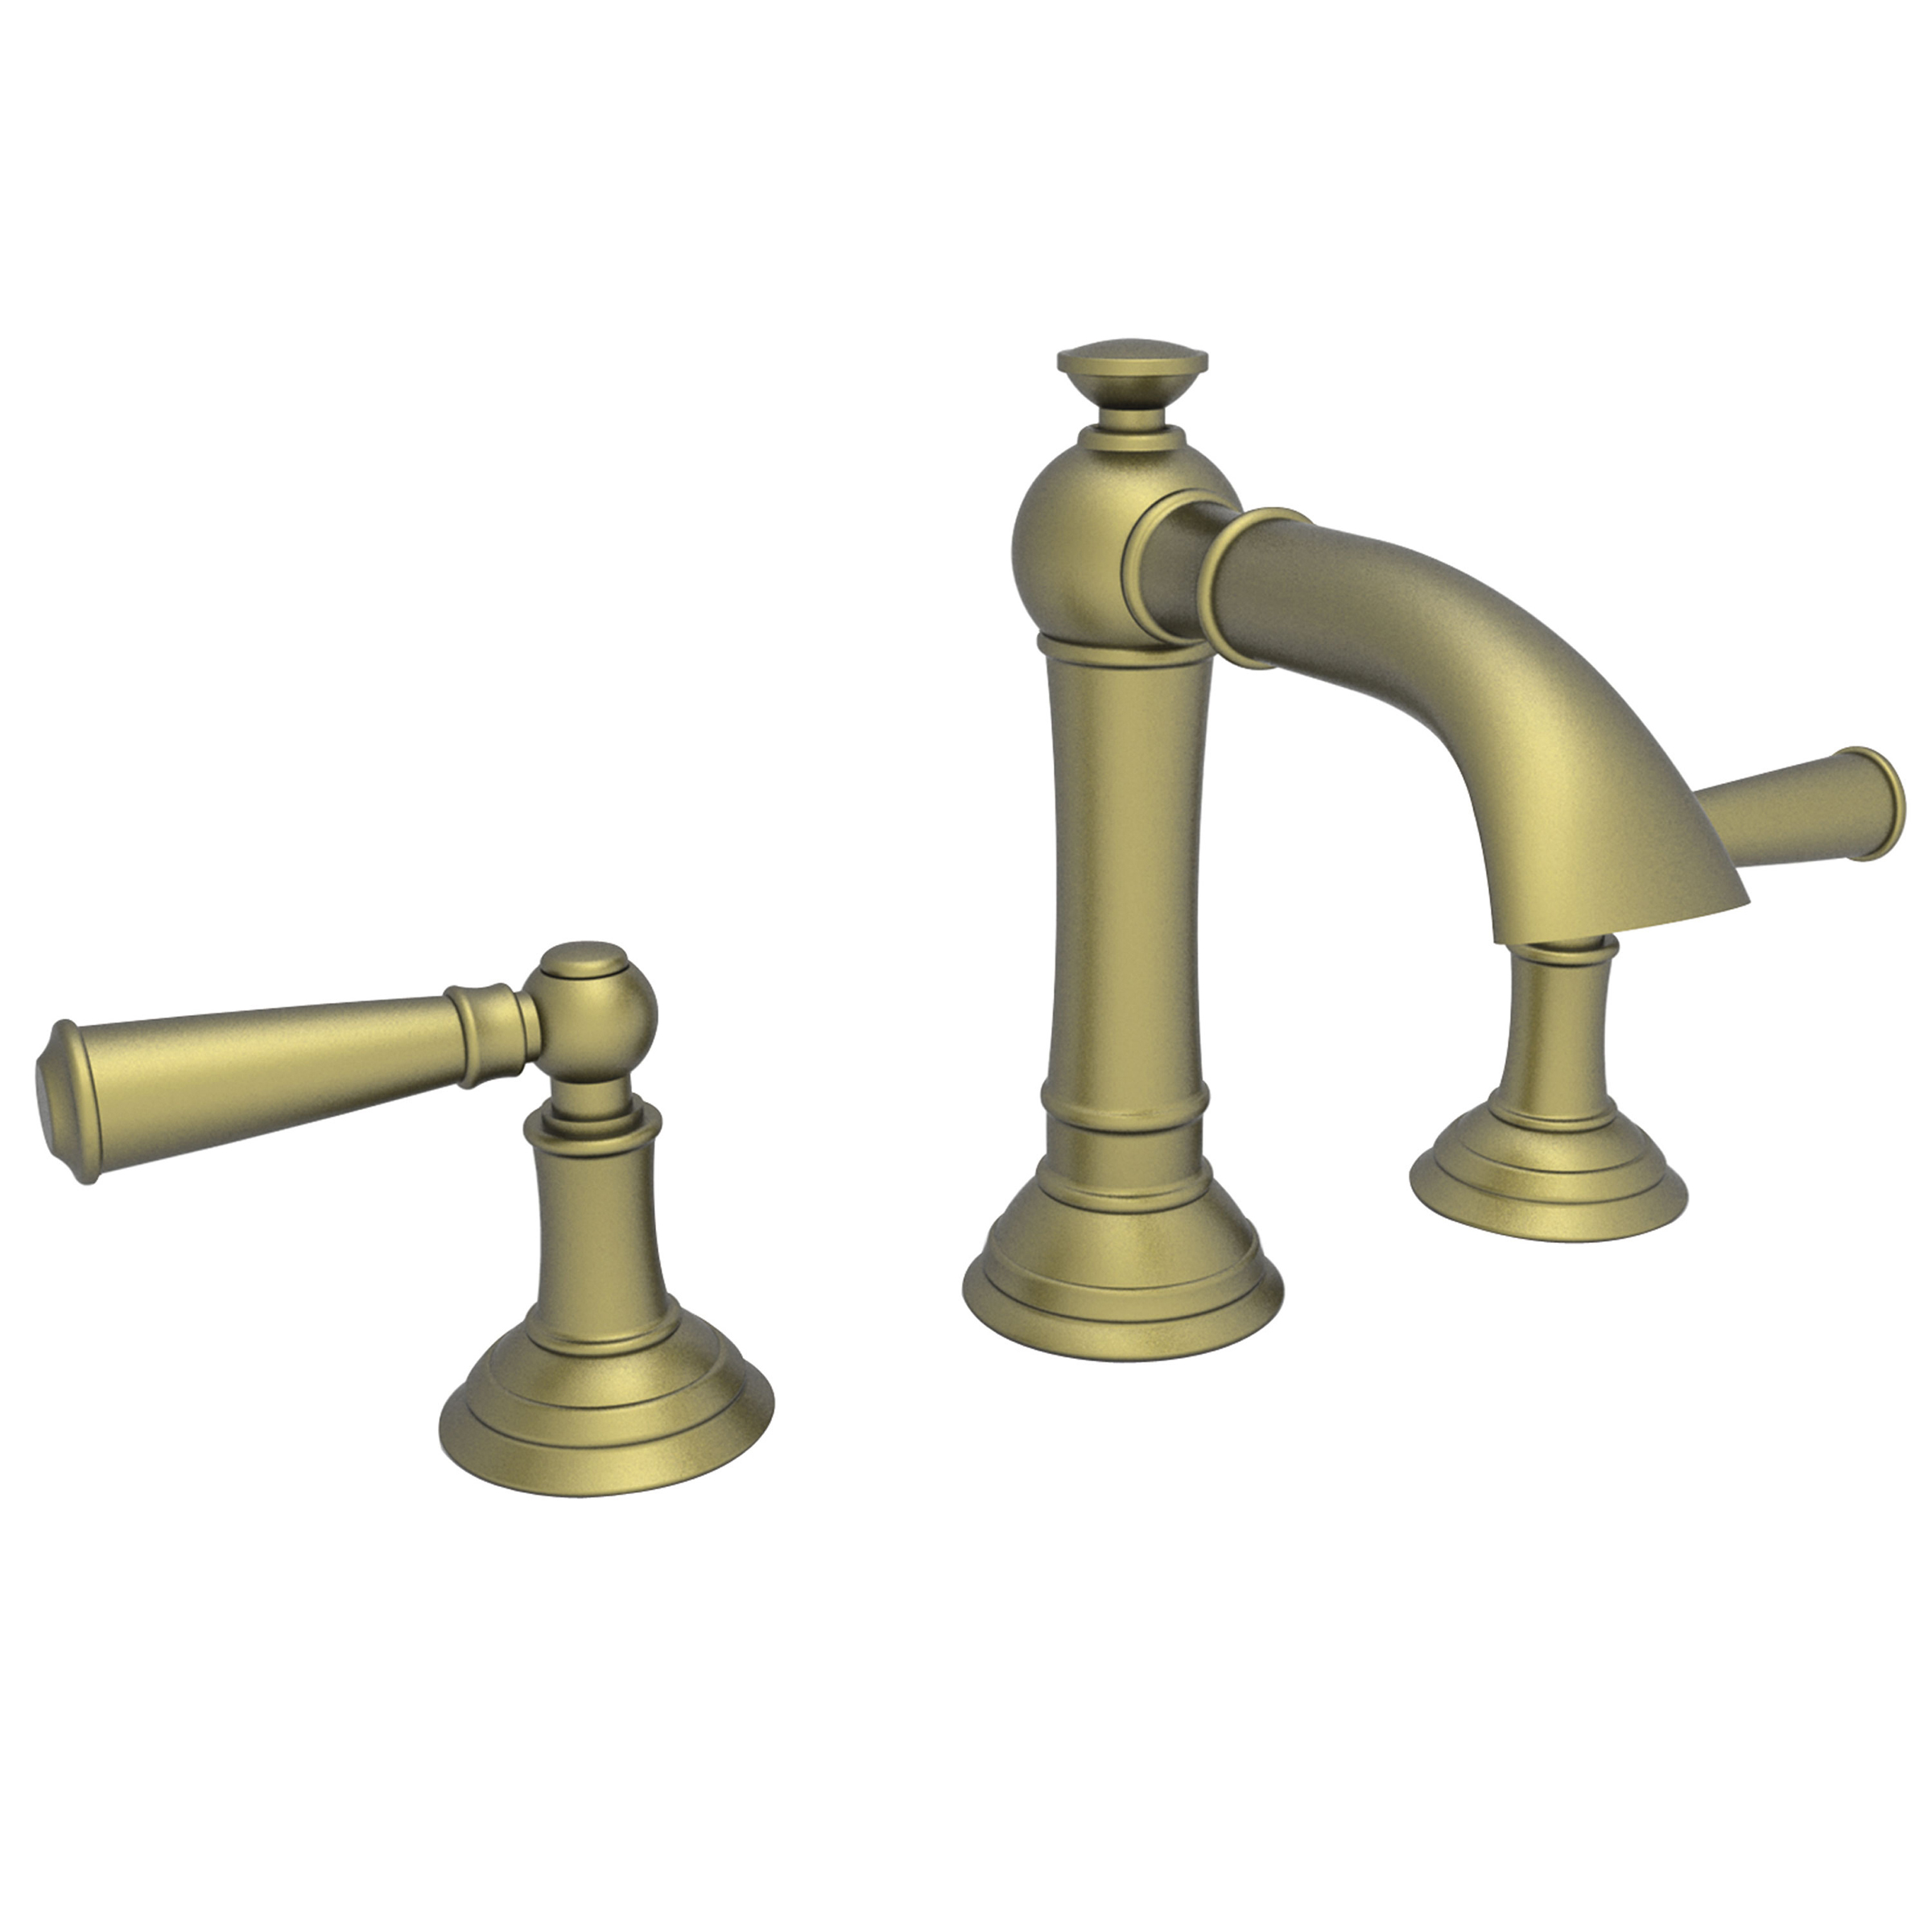 Newport brass 2410 widespread lavatory faucet lever handles tall country base newport brass Newport brass bathroom faucets